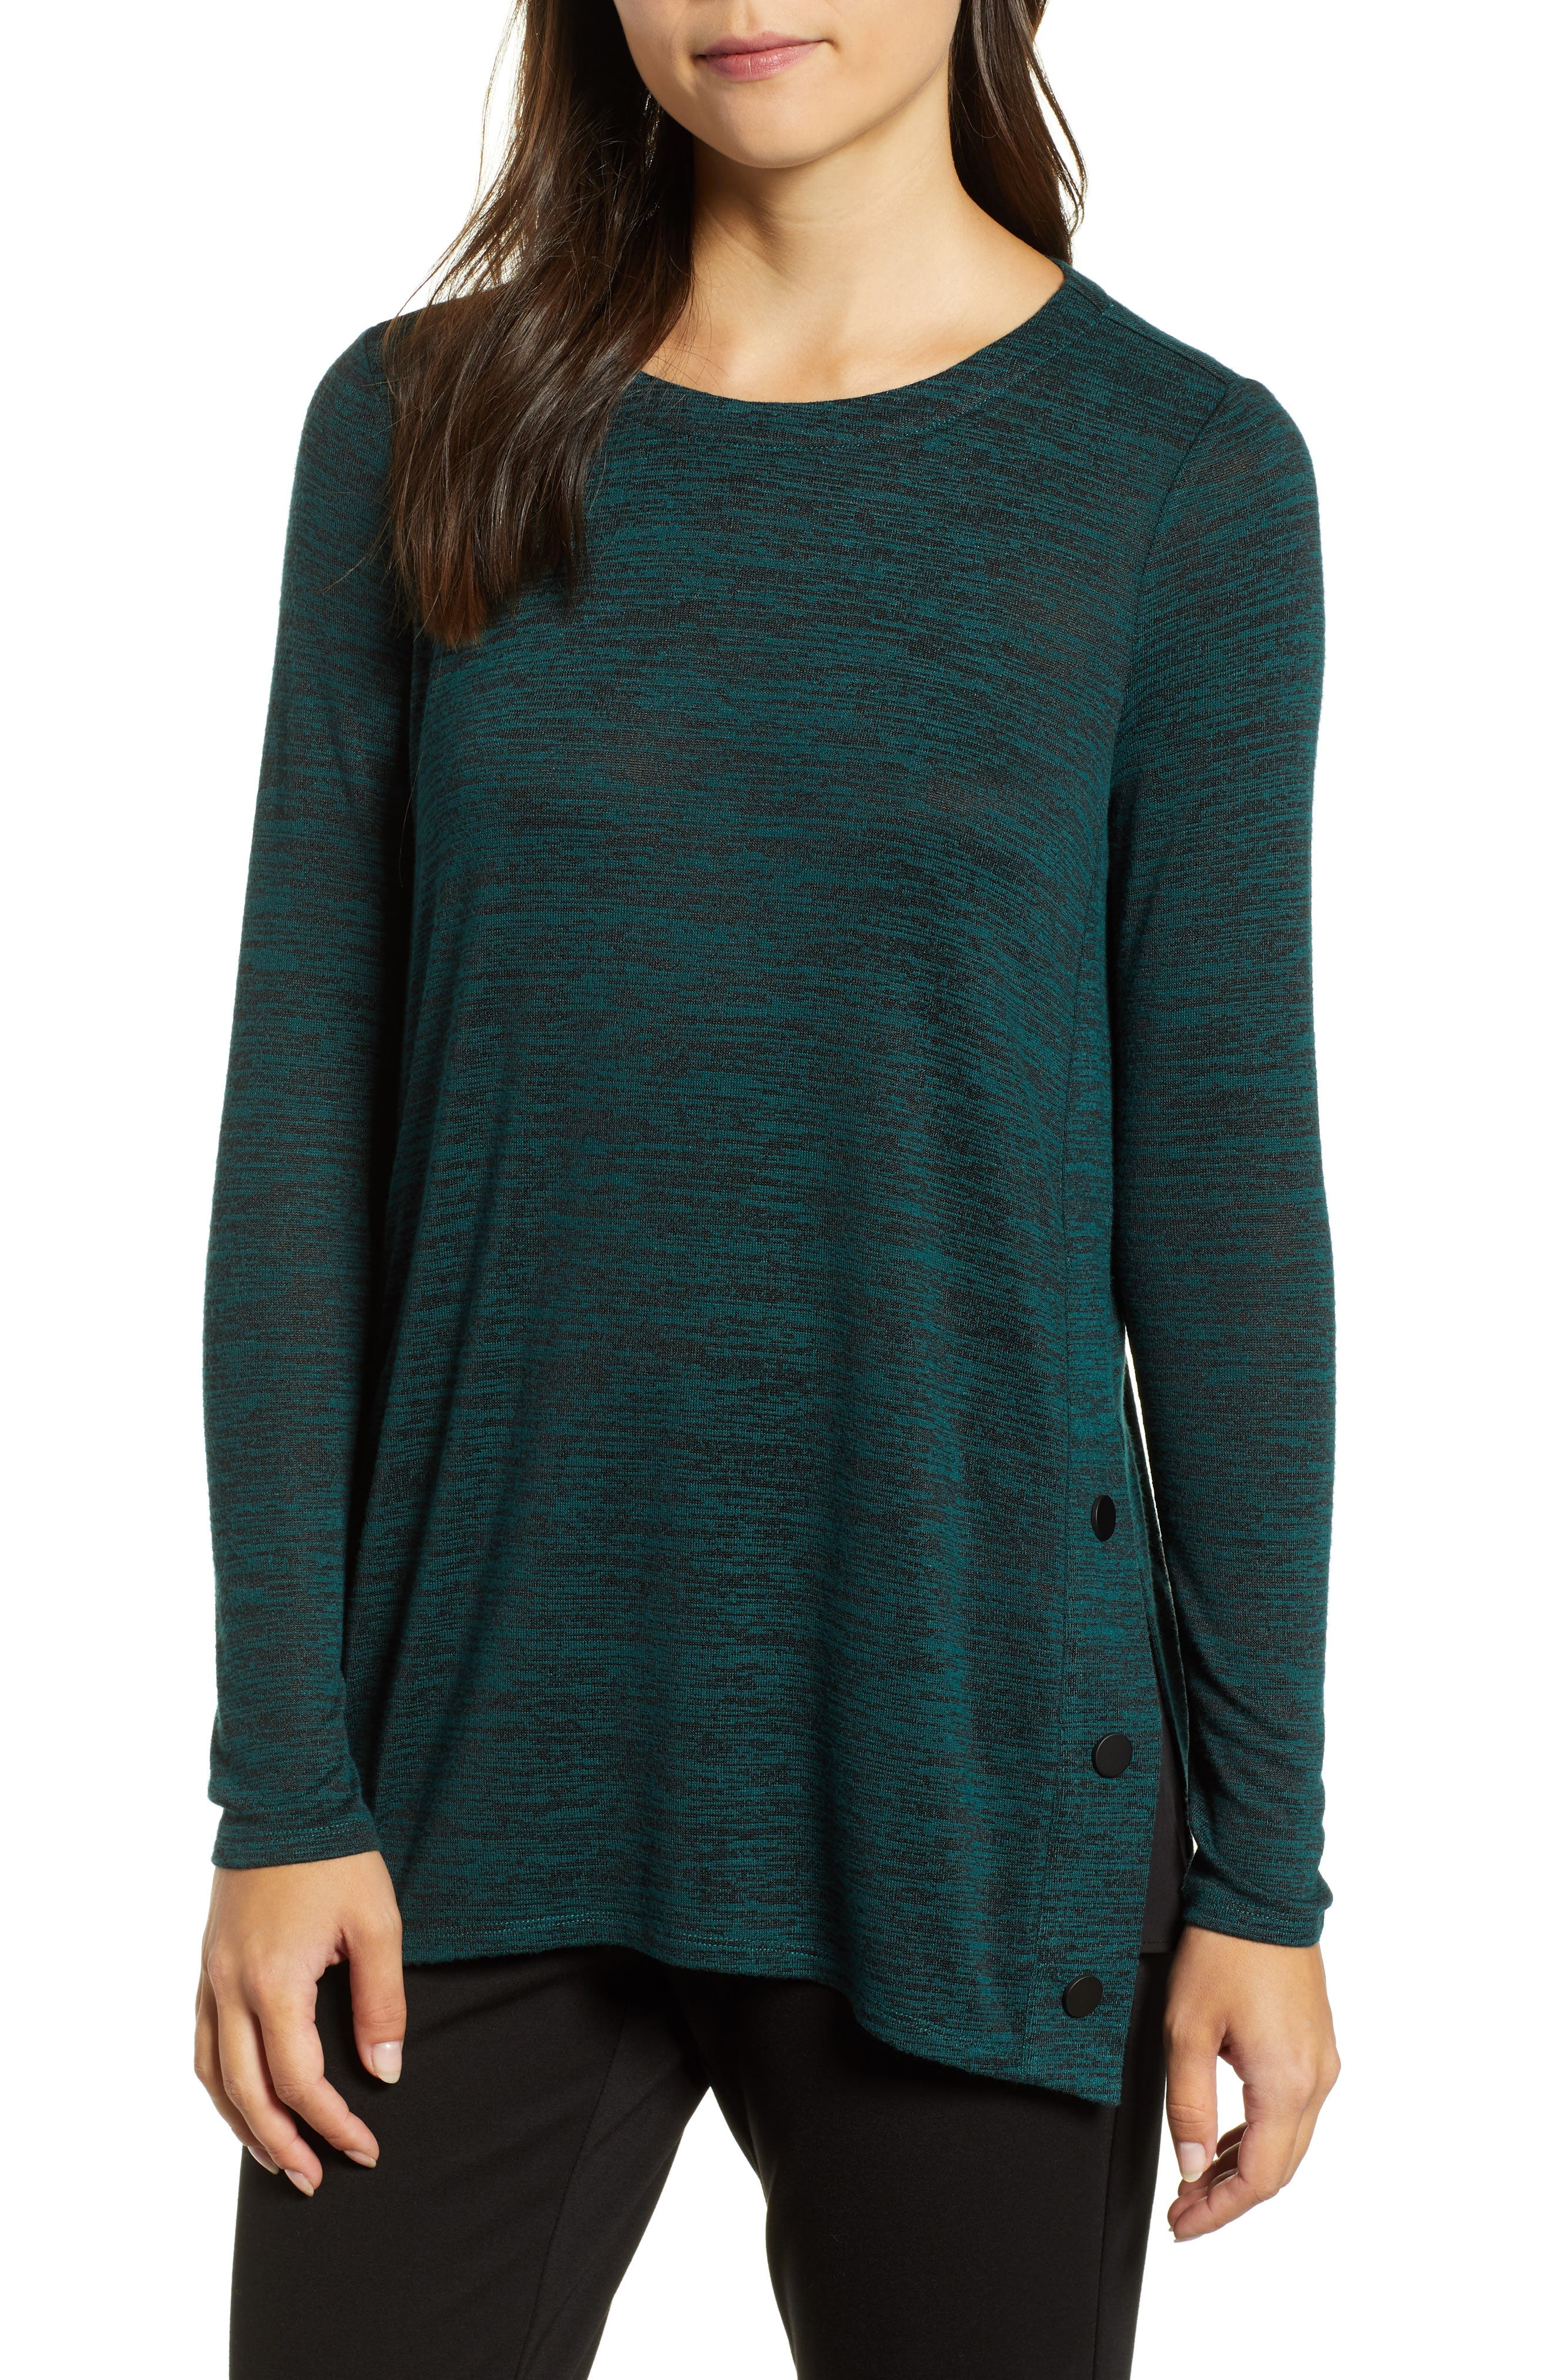 af15e2a5286 Nic And Zoe Nic+Zoe Petites Every Occasion Button-Trimmed Tunic Sweater In  Emerald